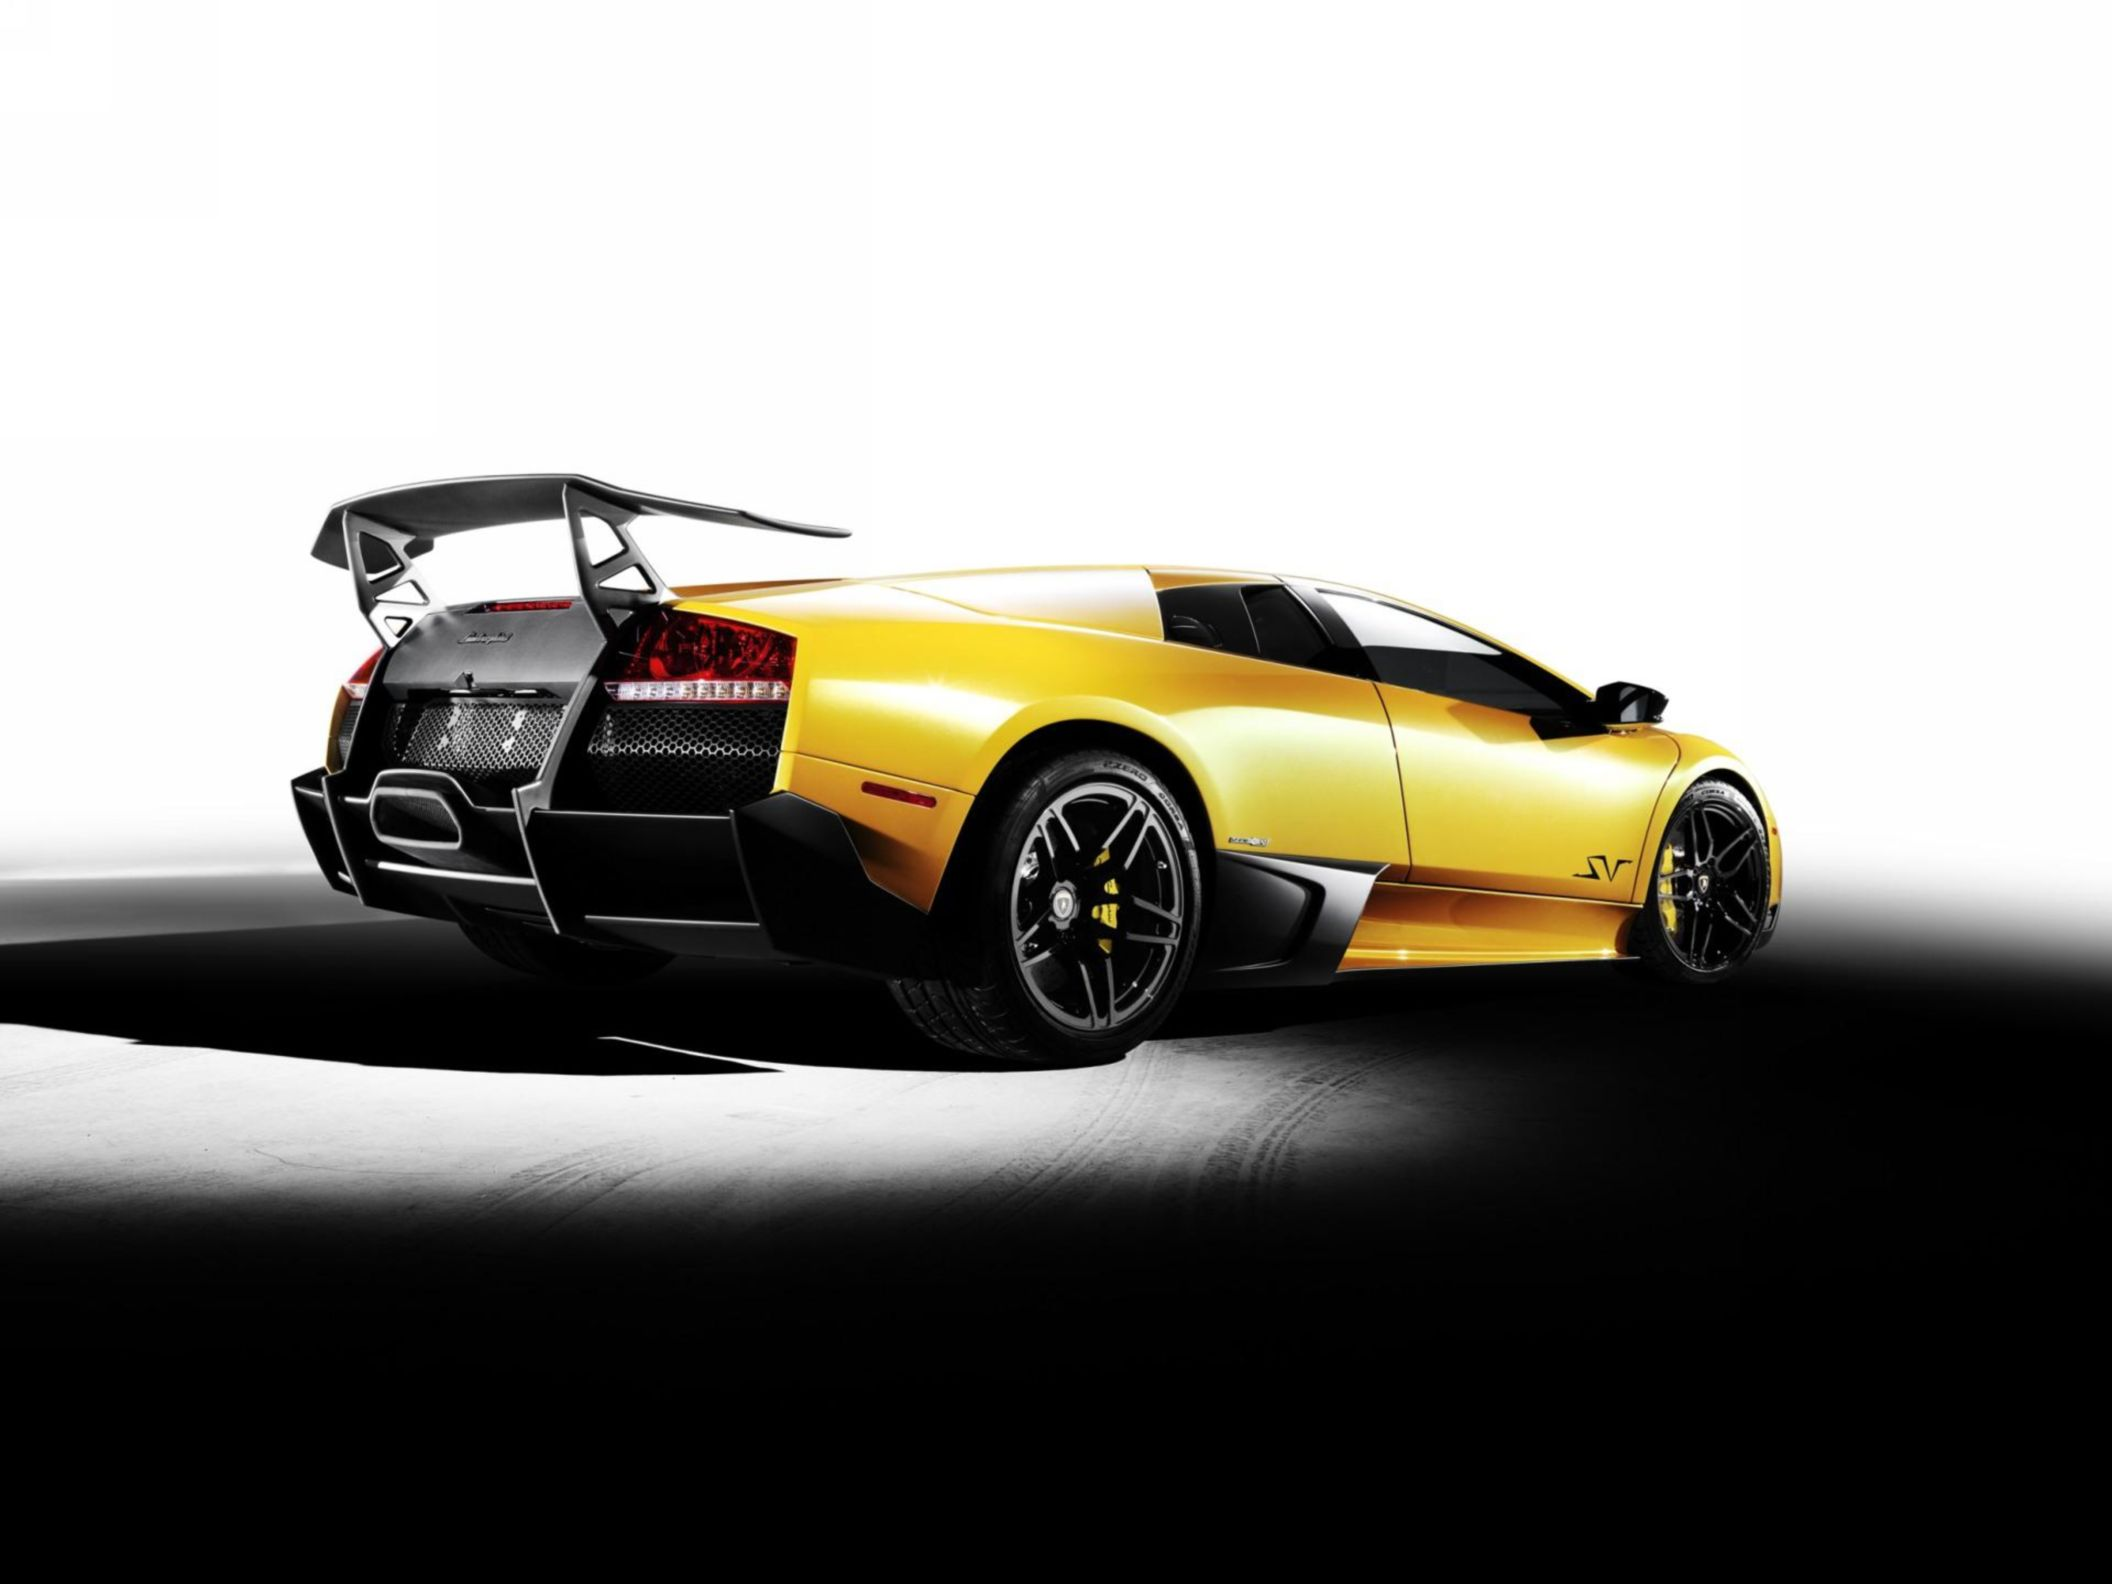 Download free HD Lamborghini Murcielago Lp670 4 Superveloce Normal Wallpaper, image